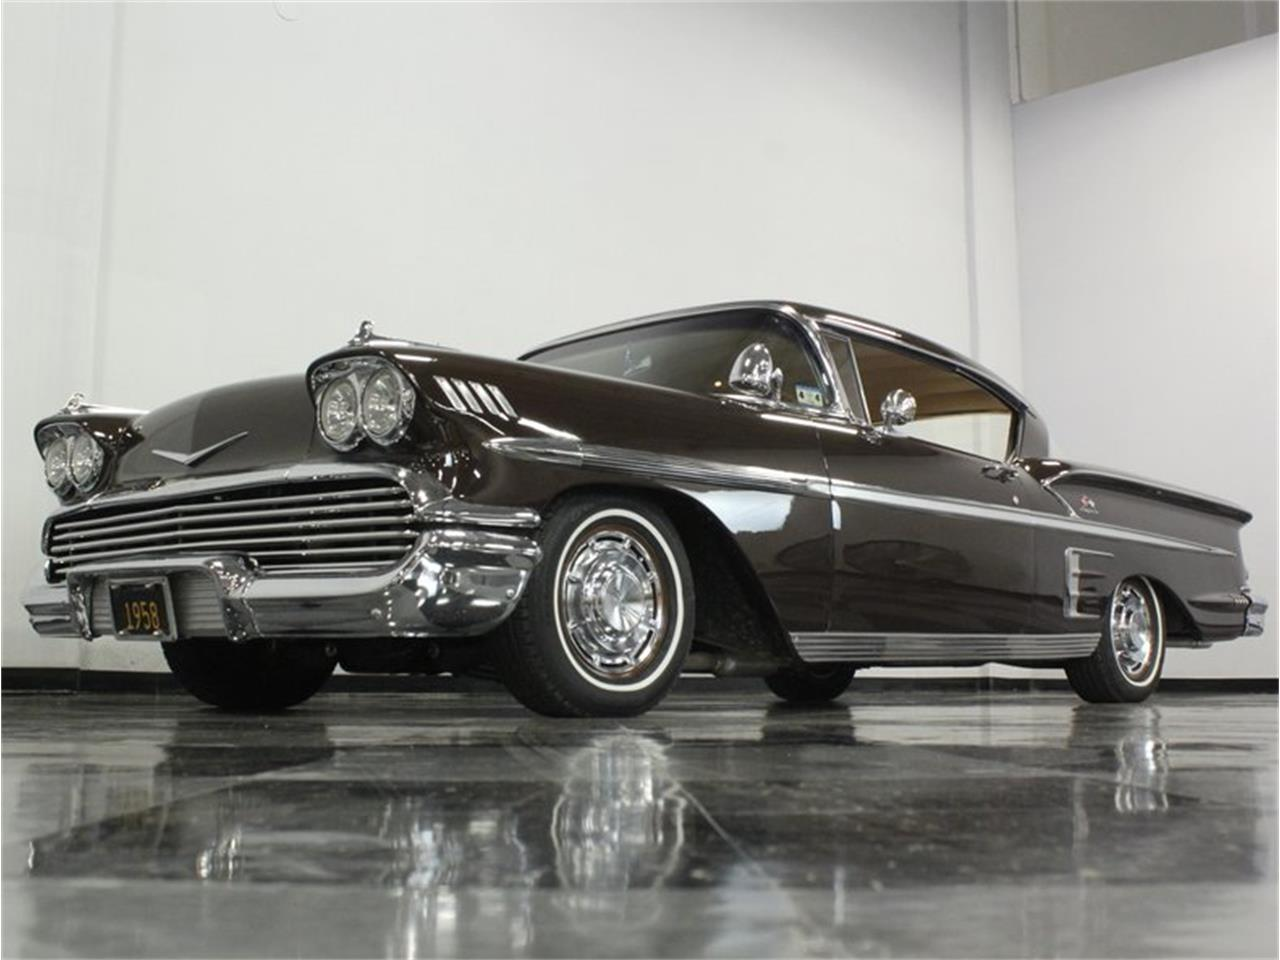 Large Picture of '58 Impala - $44,995.00 Offered by Streetside Classics - Dallas / Fort Worth - HX8B